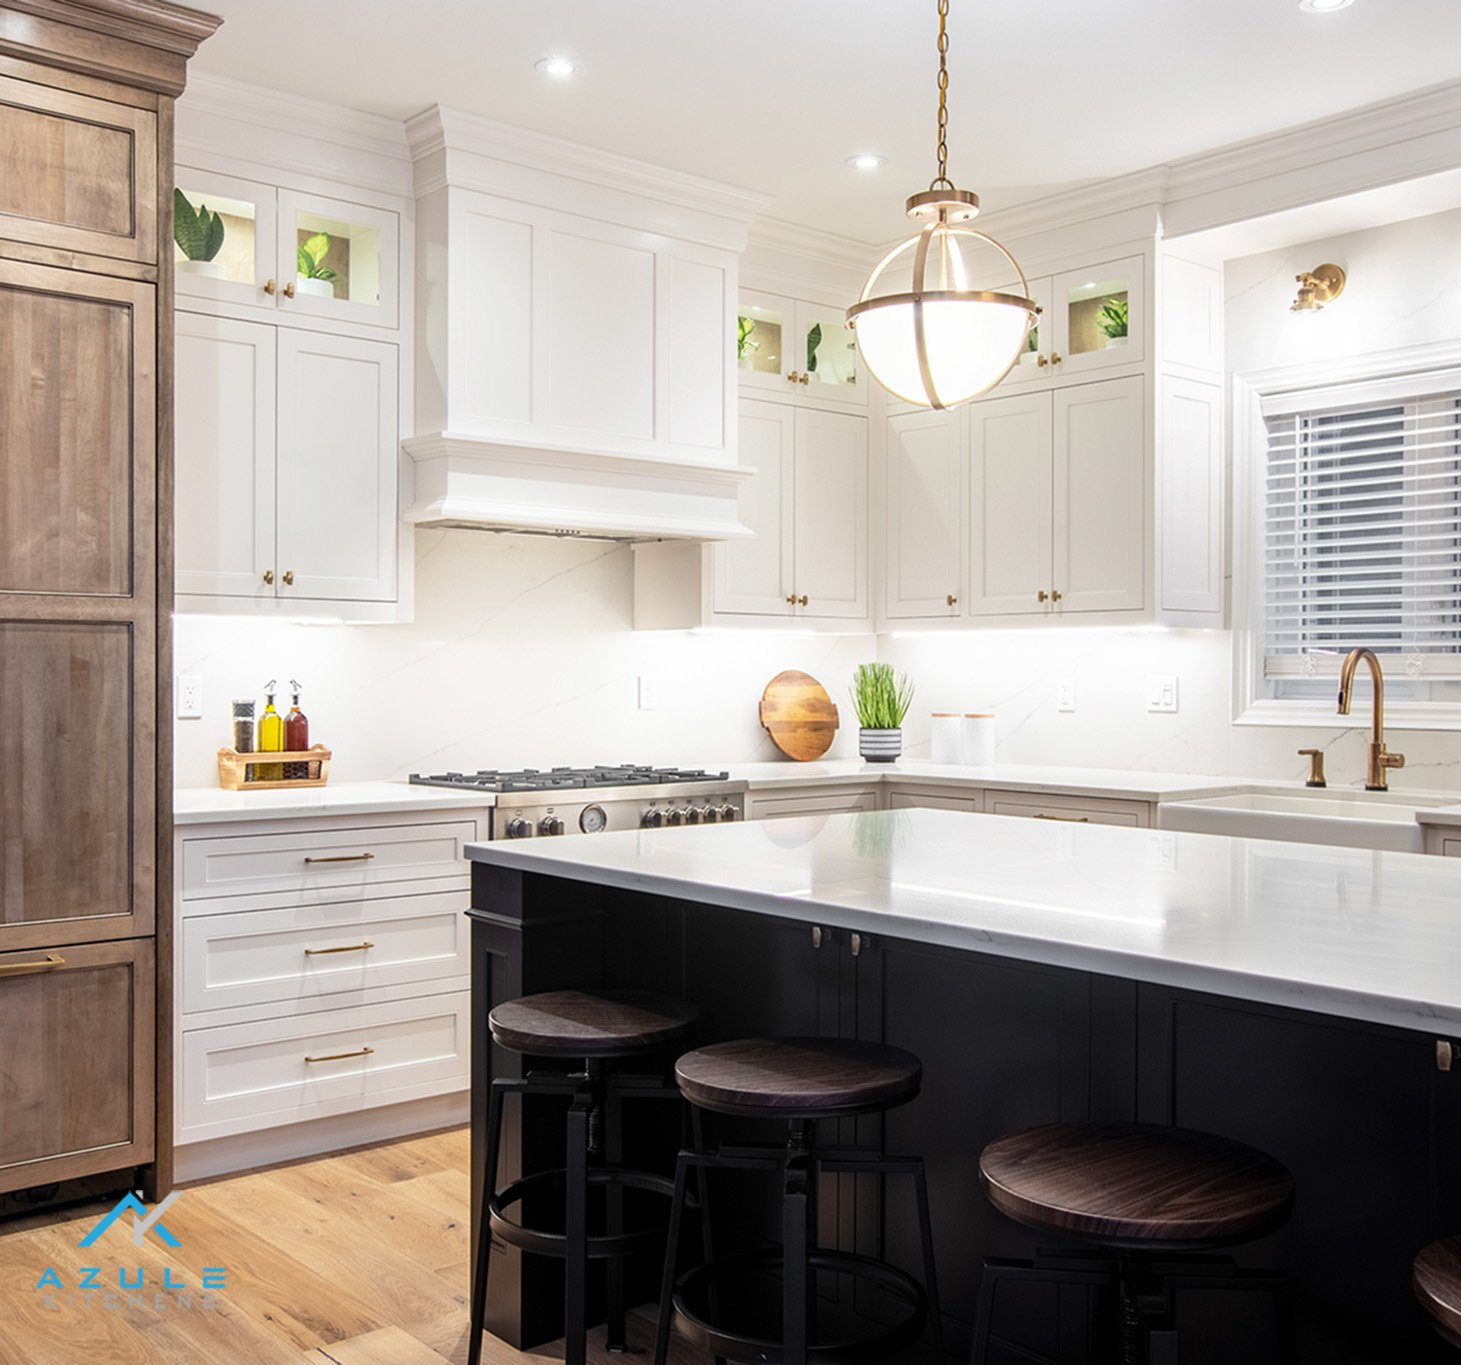 Azule Kitchens Stoney Creek Ontario- Marvelous Kitchen Trends For 2021